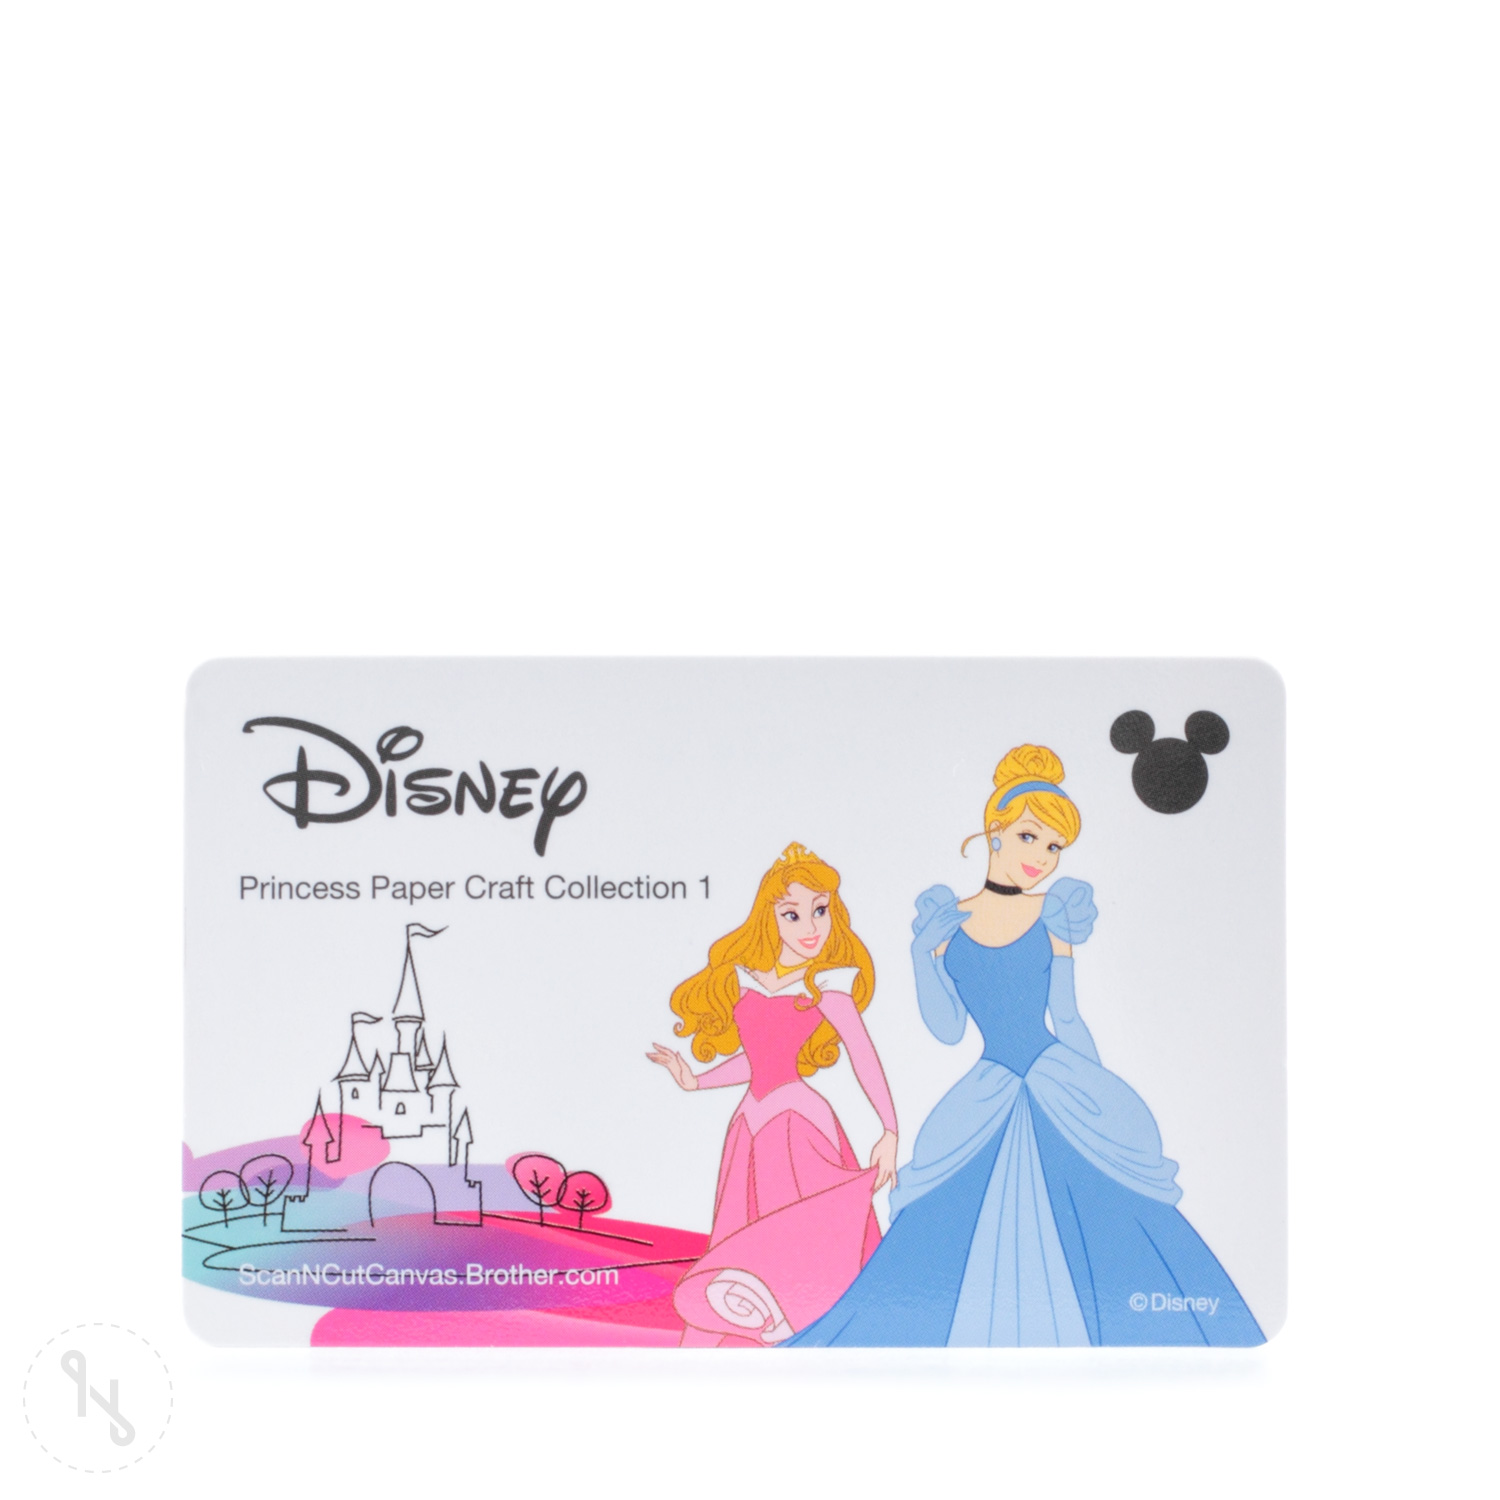 BROTHER Mustersammlung Disney Prinzessinnen 1 - 18 Designs